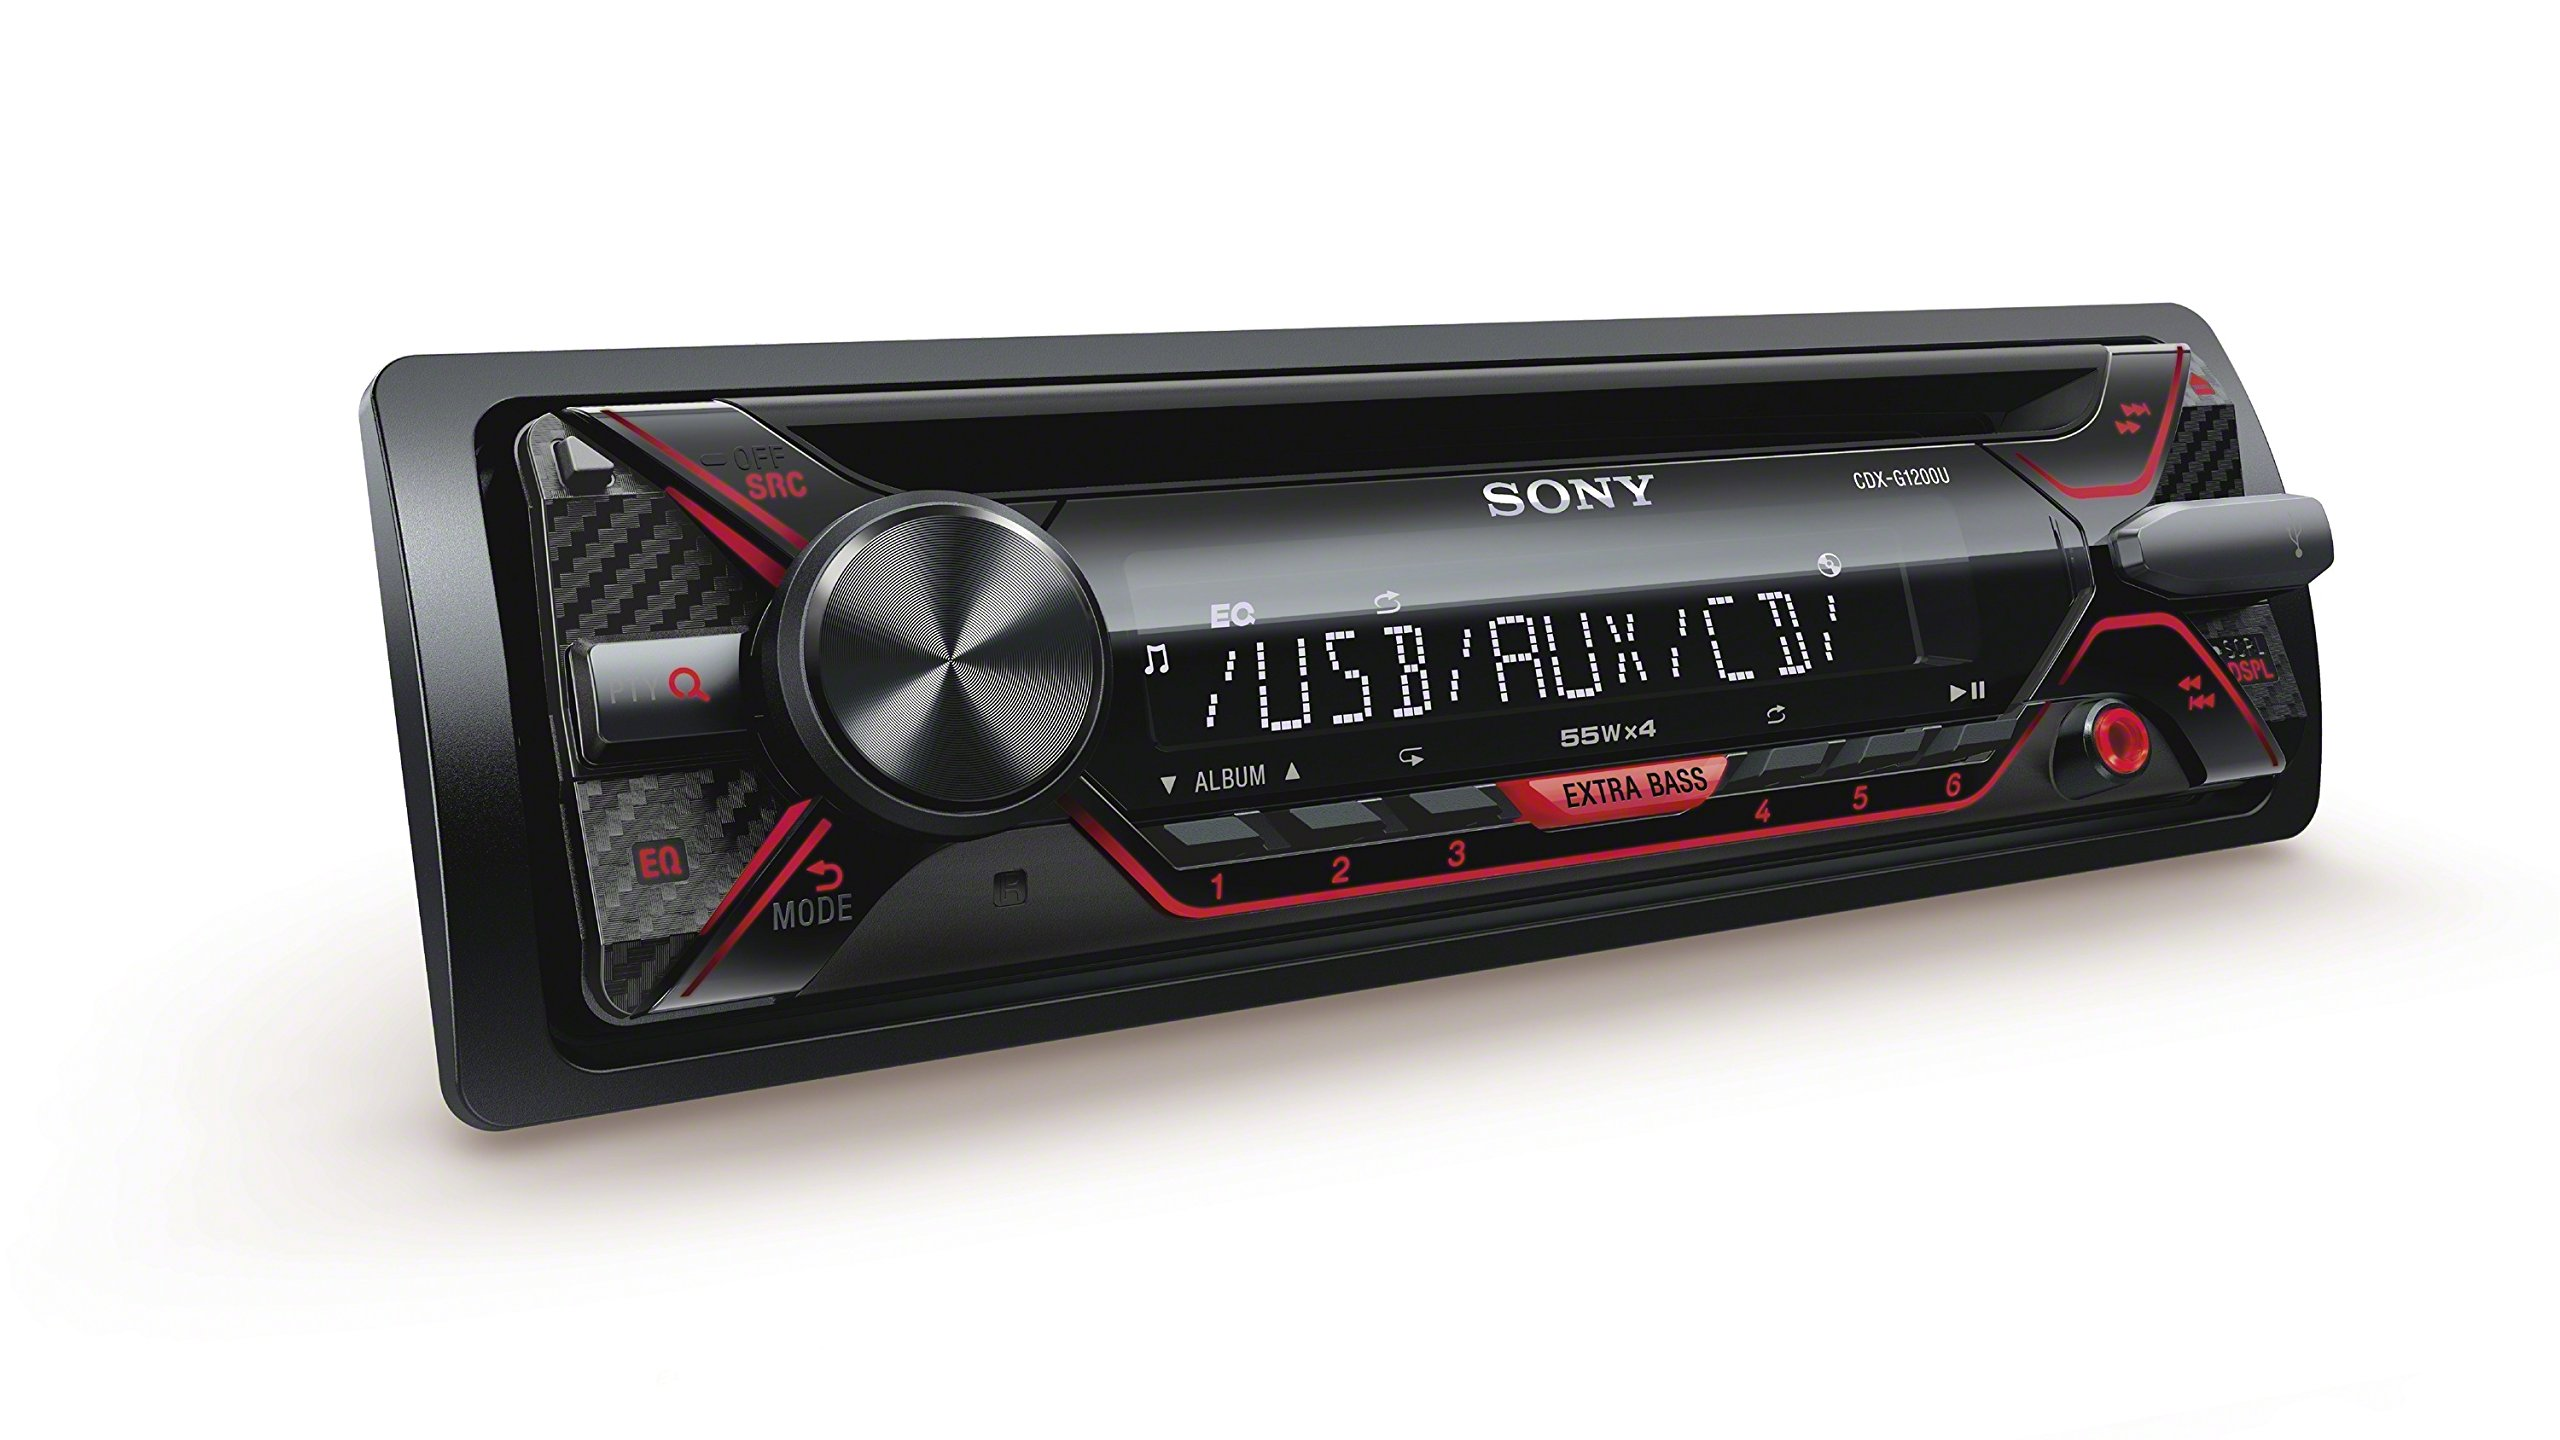 Sony CDX-G1200U 55W CD Receiver with Enhanced Smartphone Connectivity